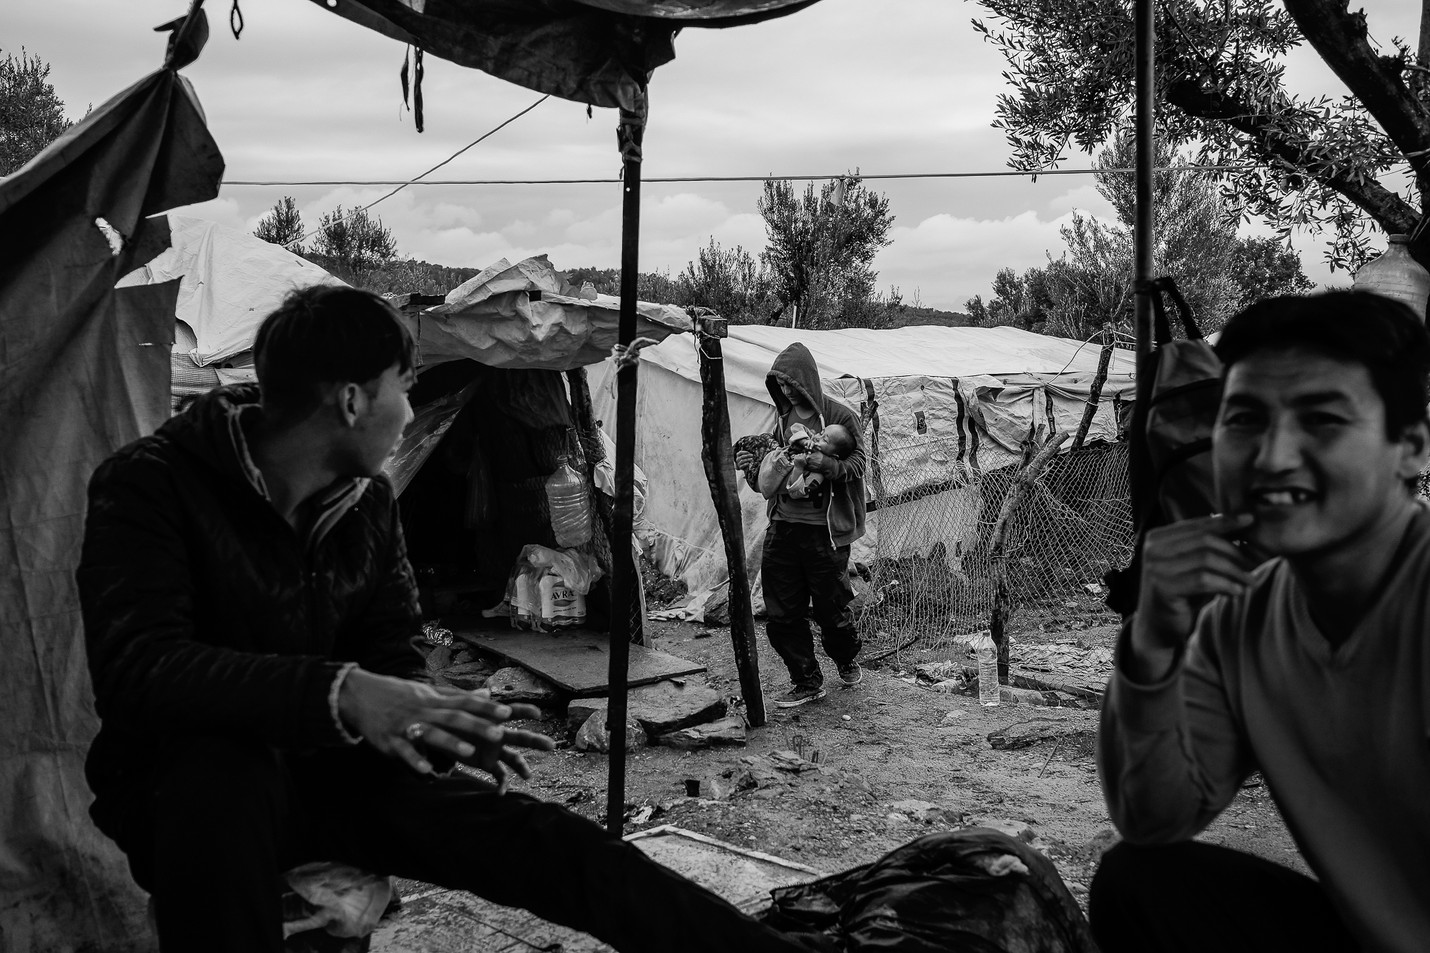 By the fire with Hasan (30) from Afghanistan (right) and his relatives among their tents in the so-called jungle just outside of the Moria refugee camp.